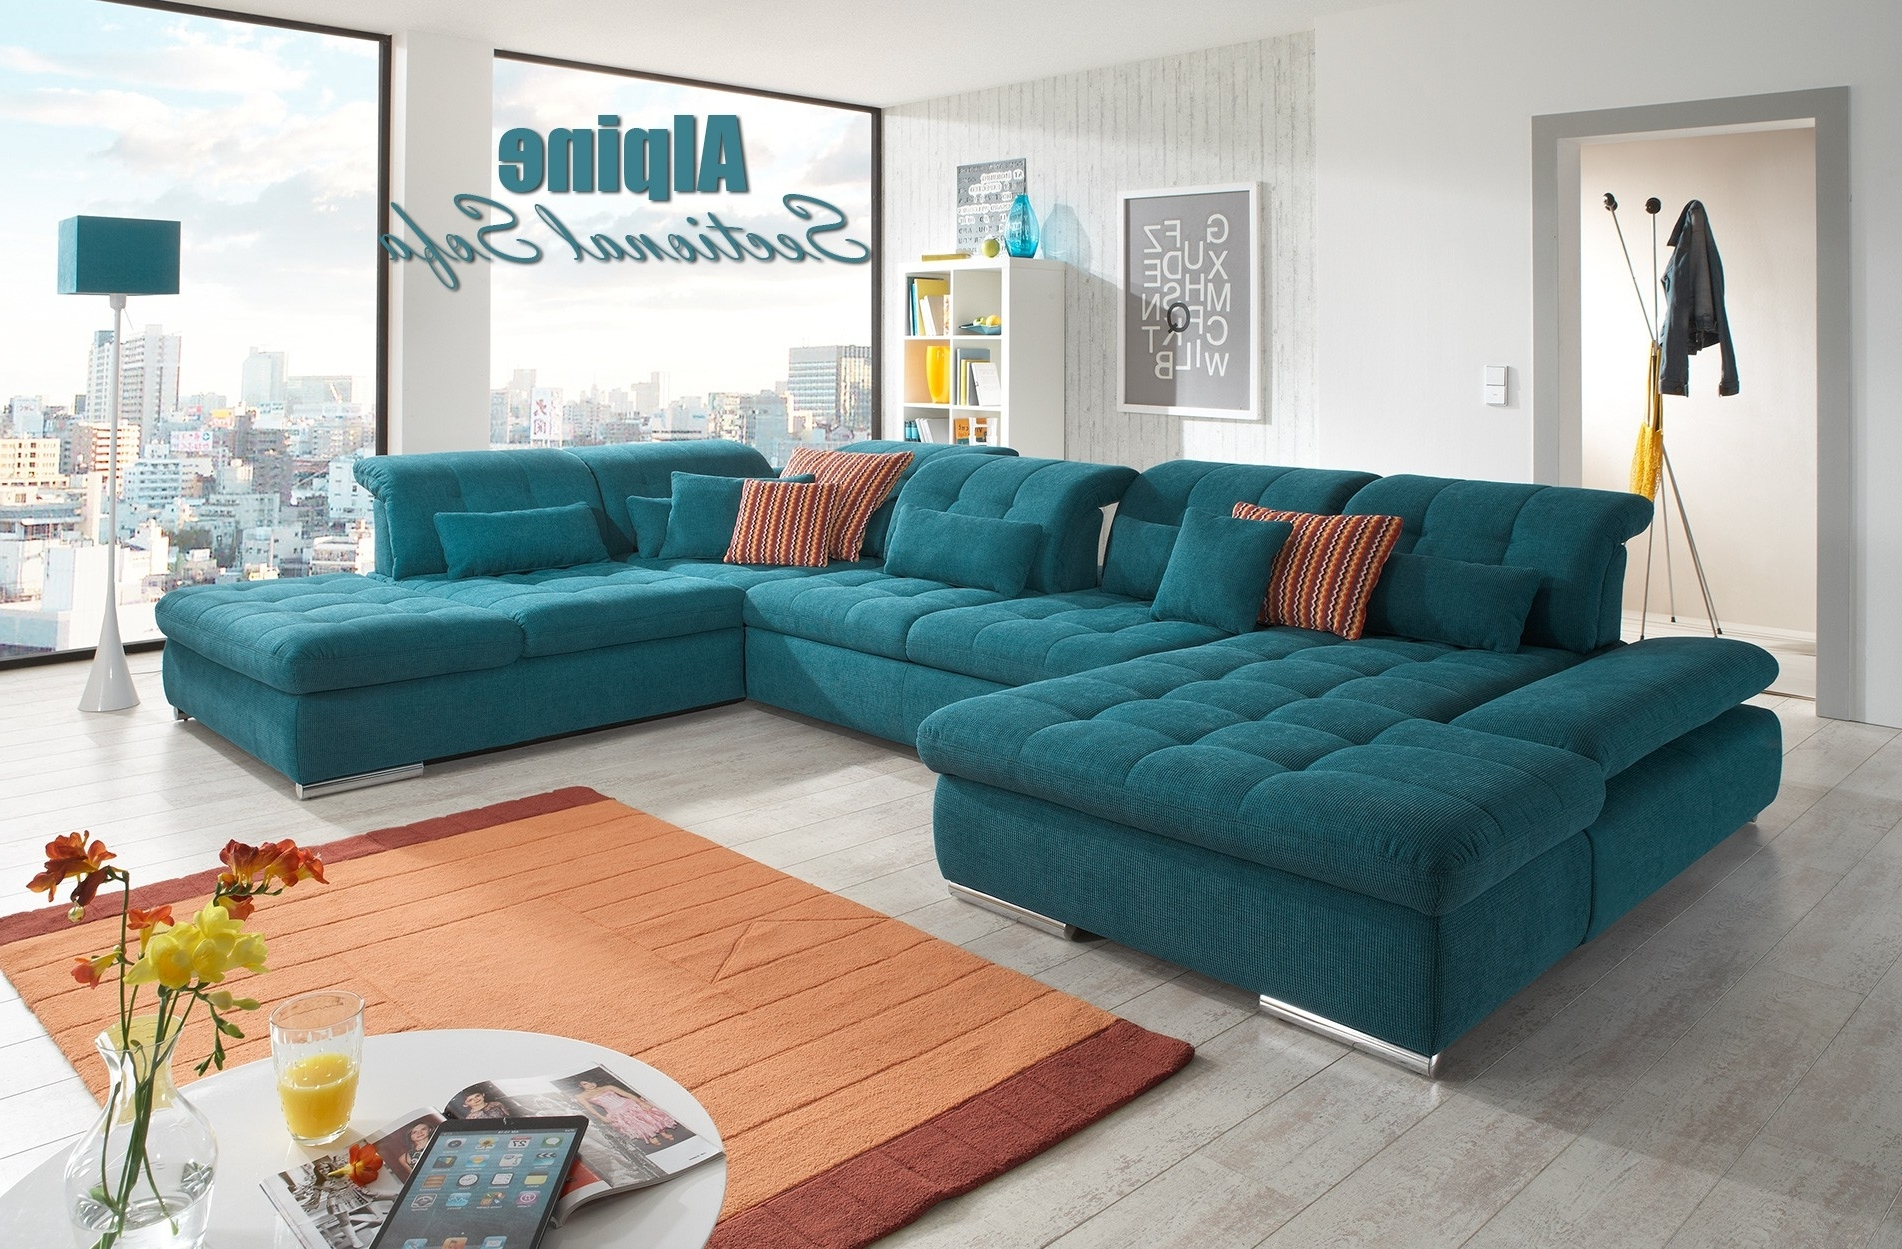 Newest Nj Sectional Sofas Throughout Modern & Contemporary Furniture Store Paramus, Nj (View 14 of 20)